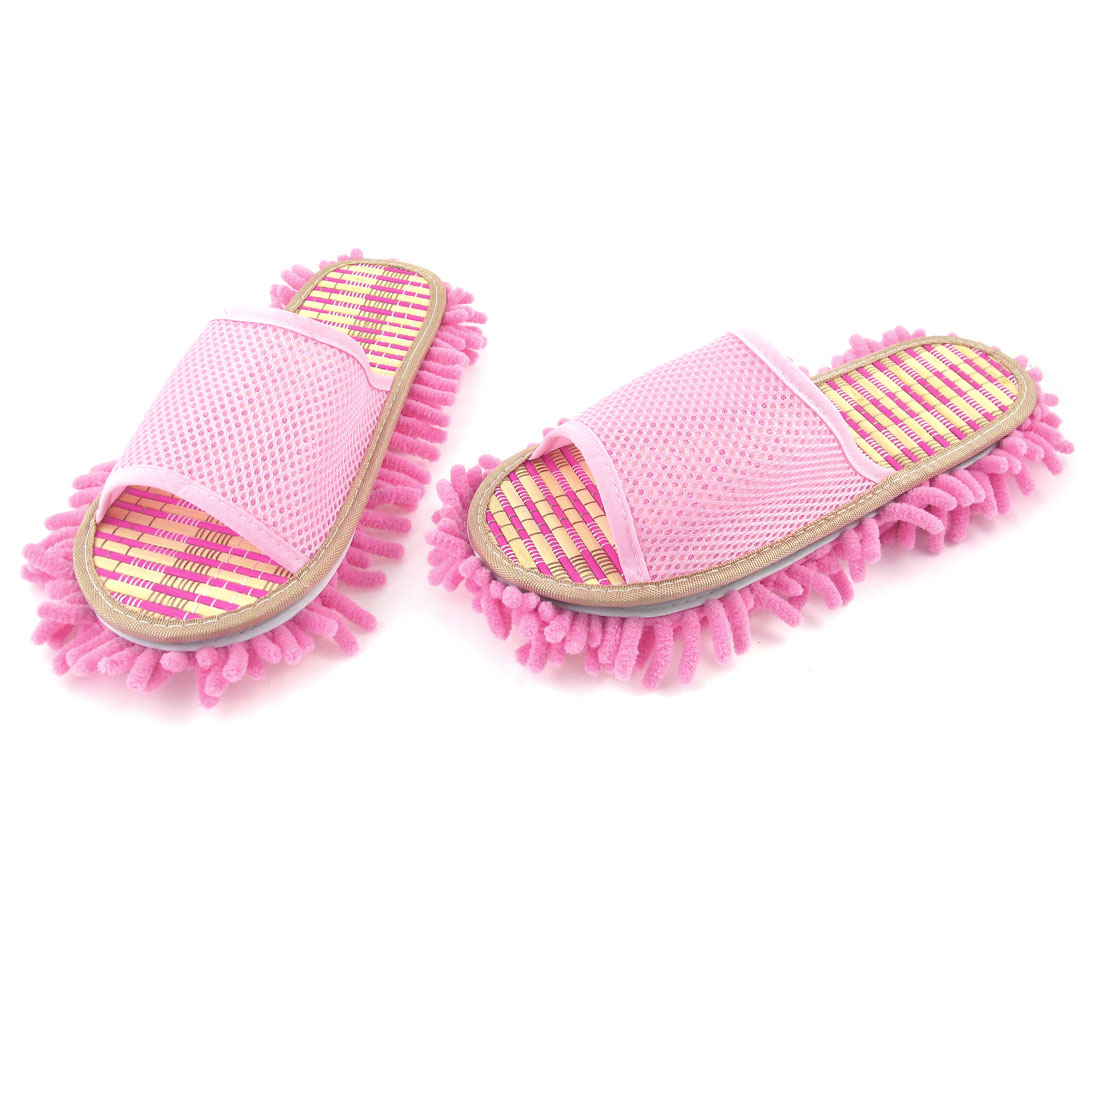 Pink Netty Upper Cotton Blends Outsole Home Floor Cleaner Mop Slippers UK 6.5